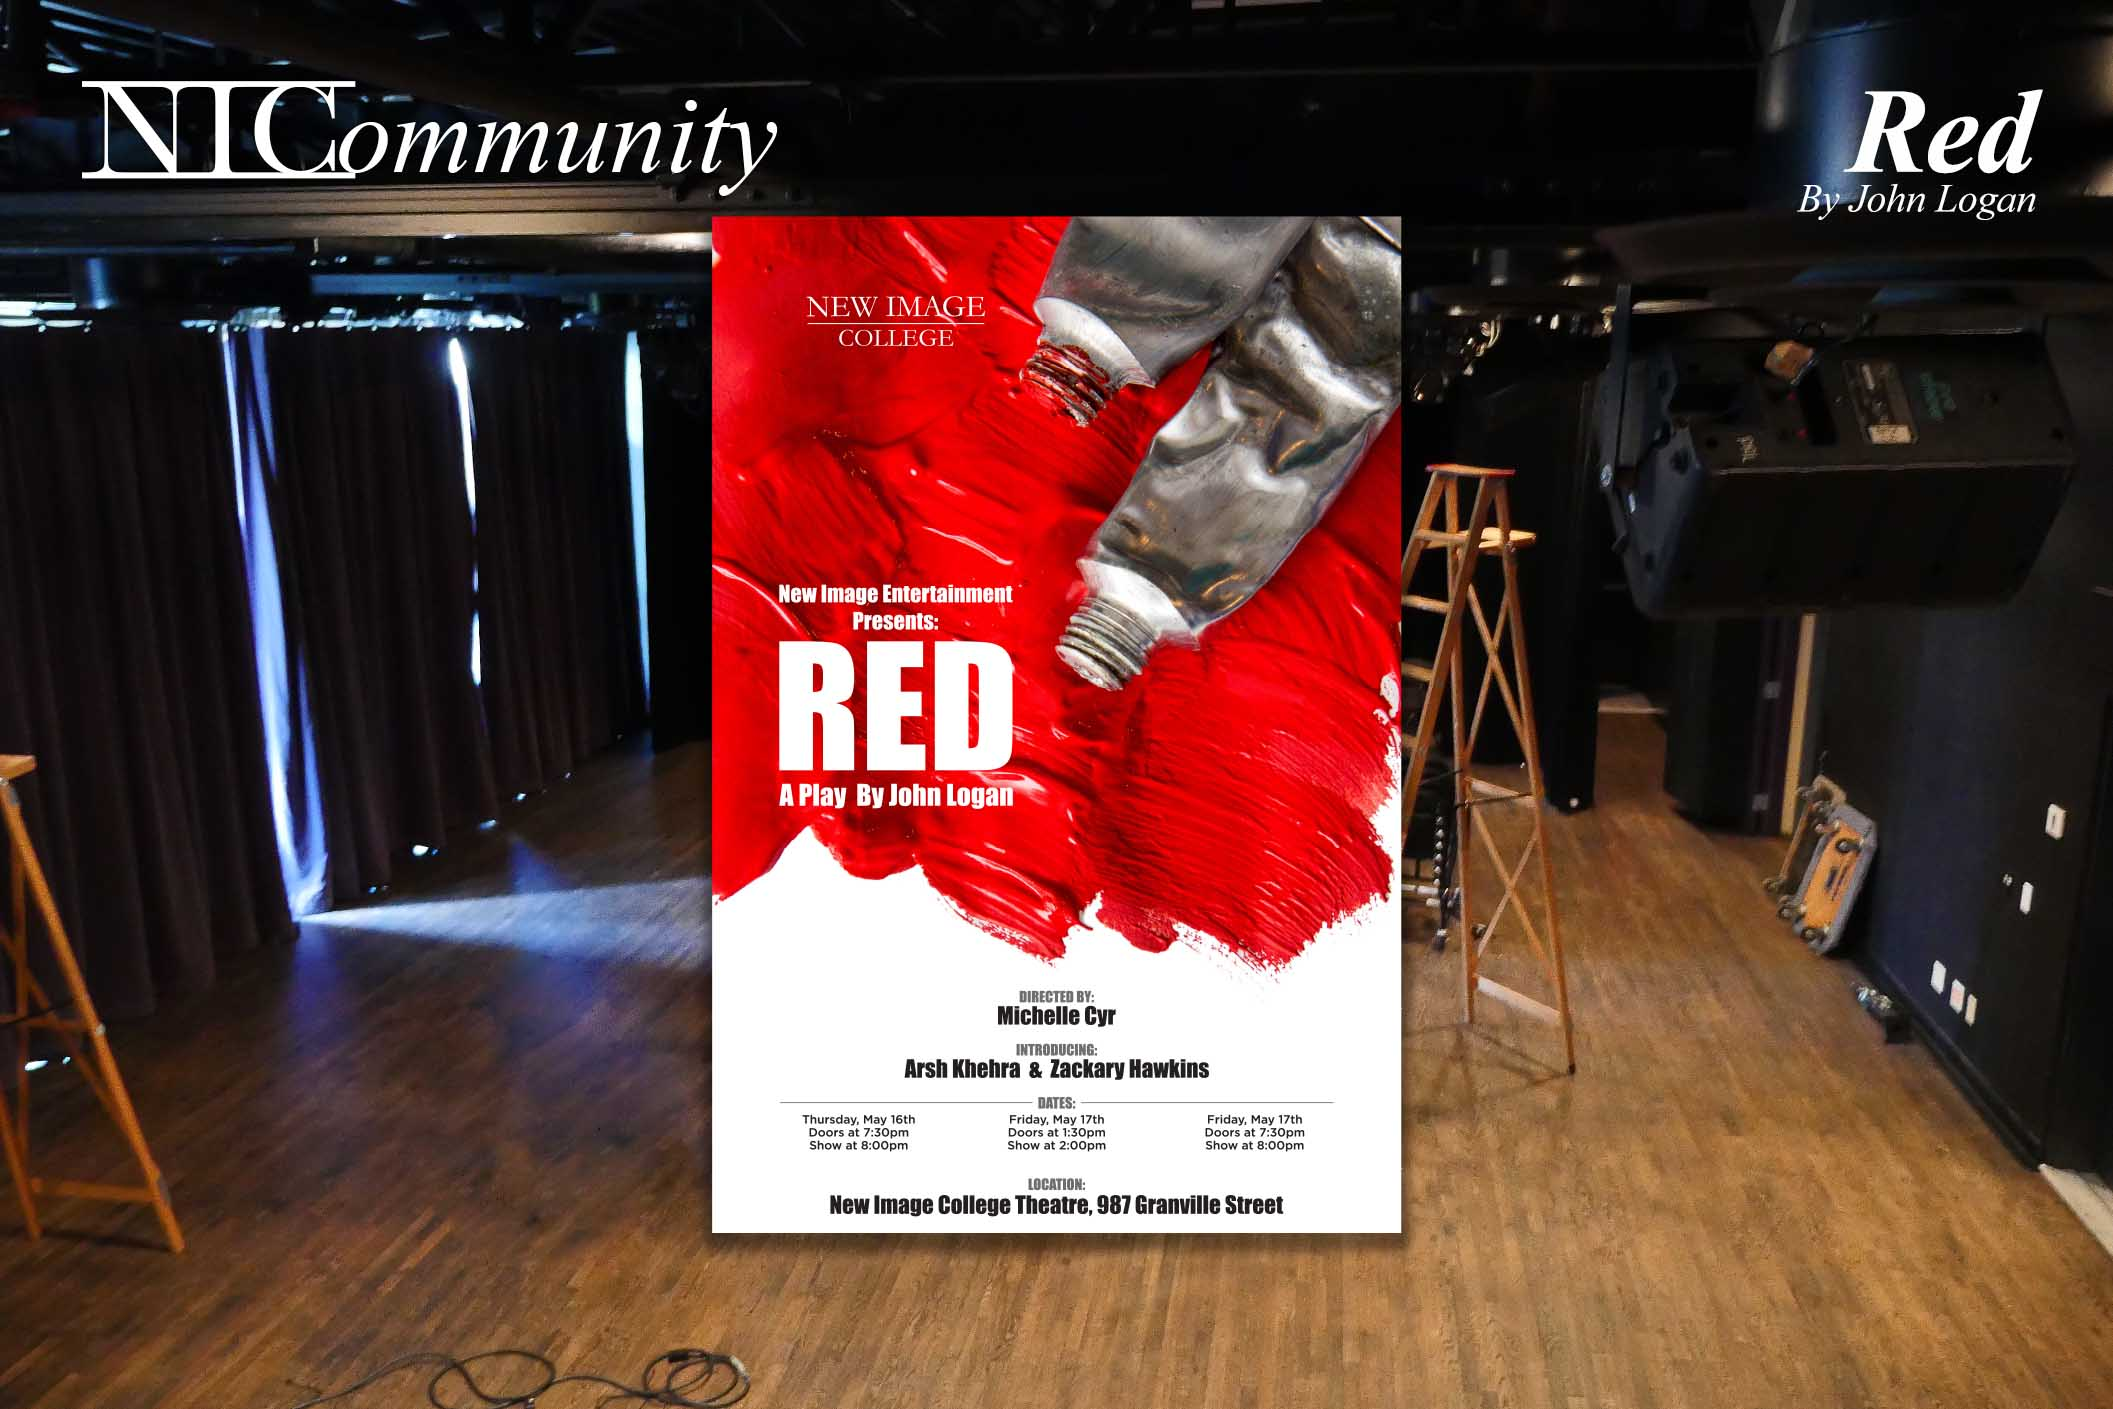 Our students perform 'Red' by John Logan